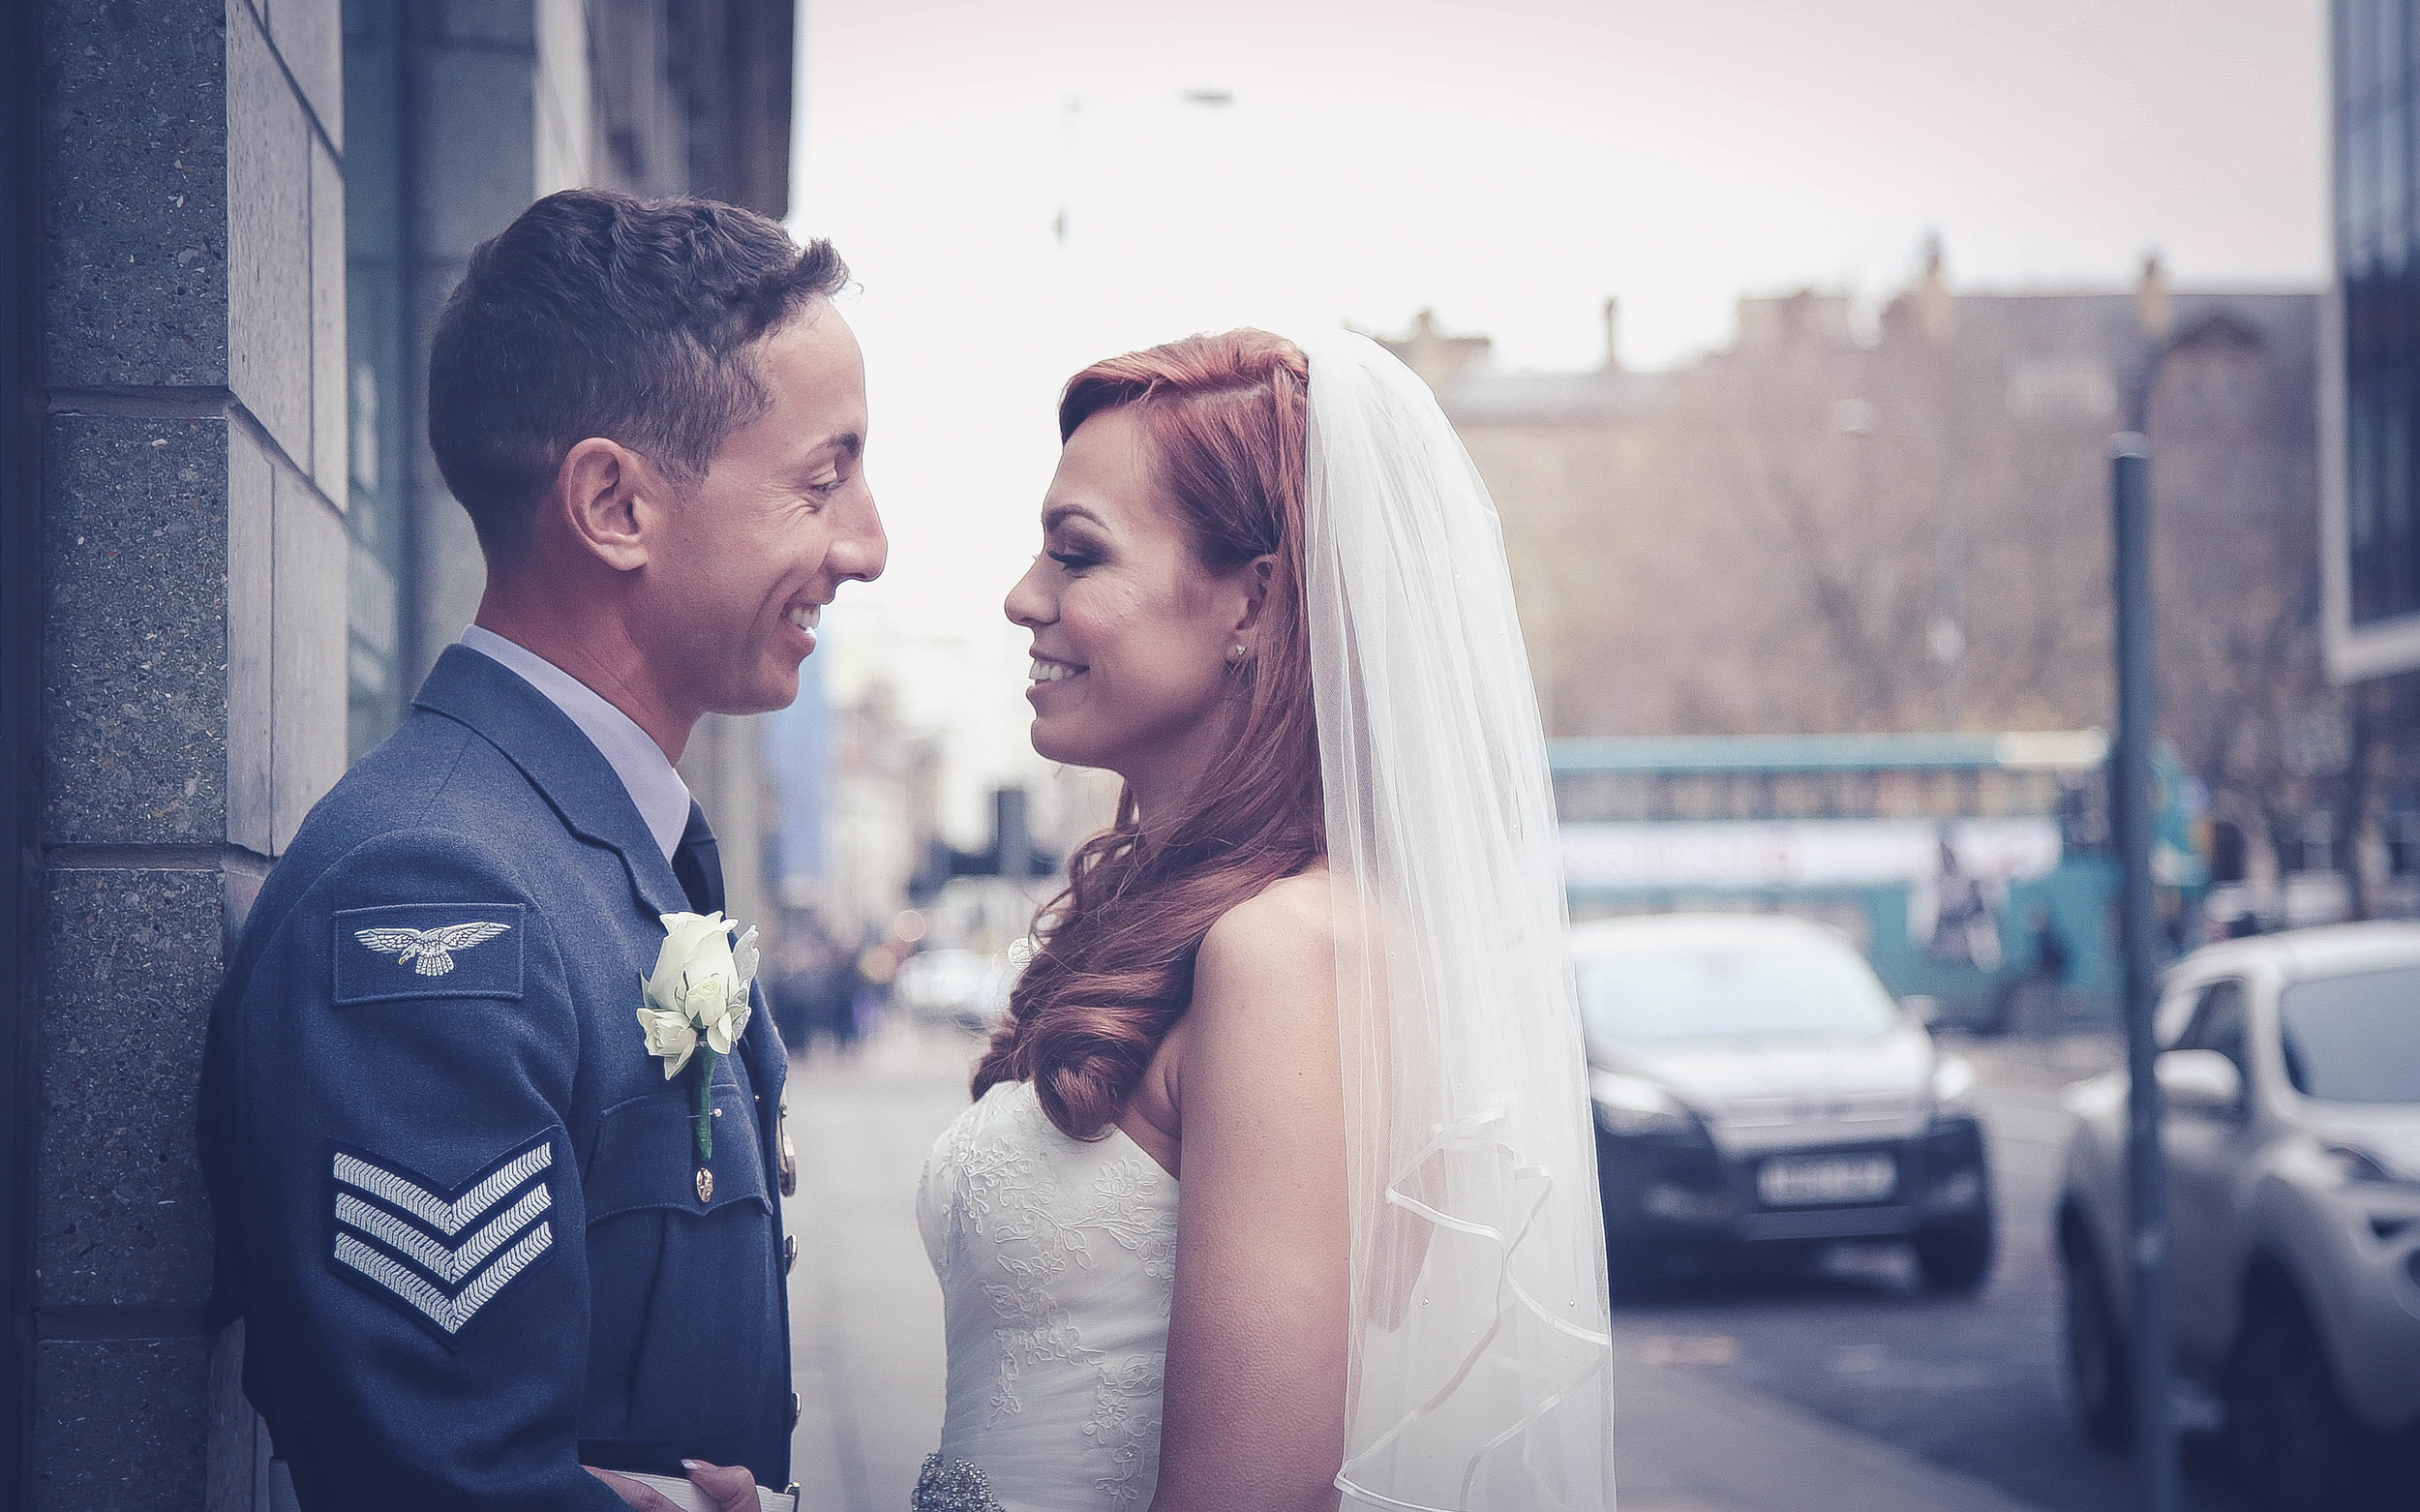 Weddings at the shankly hotel liverpool-91.jpg